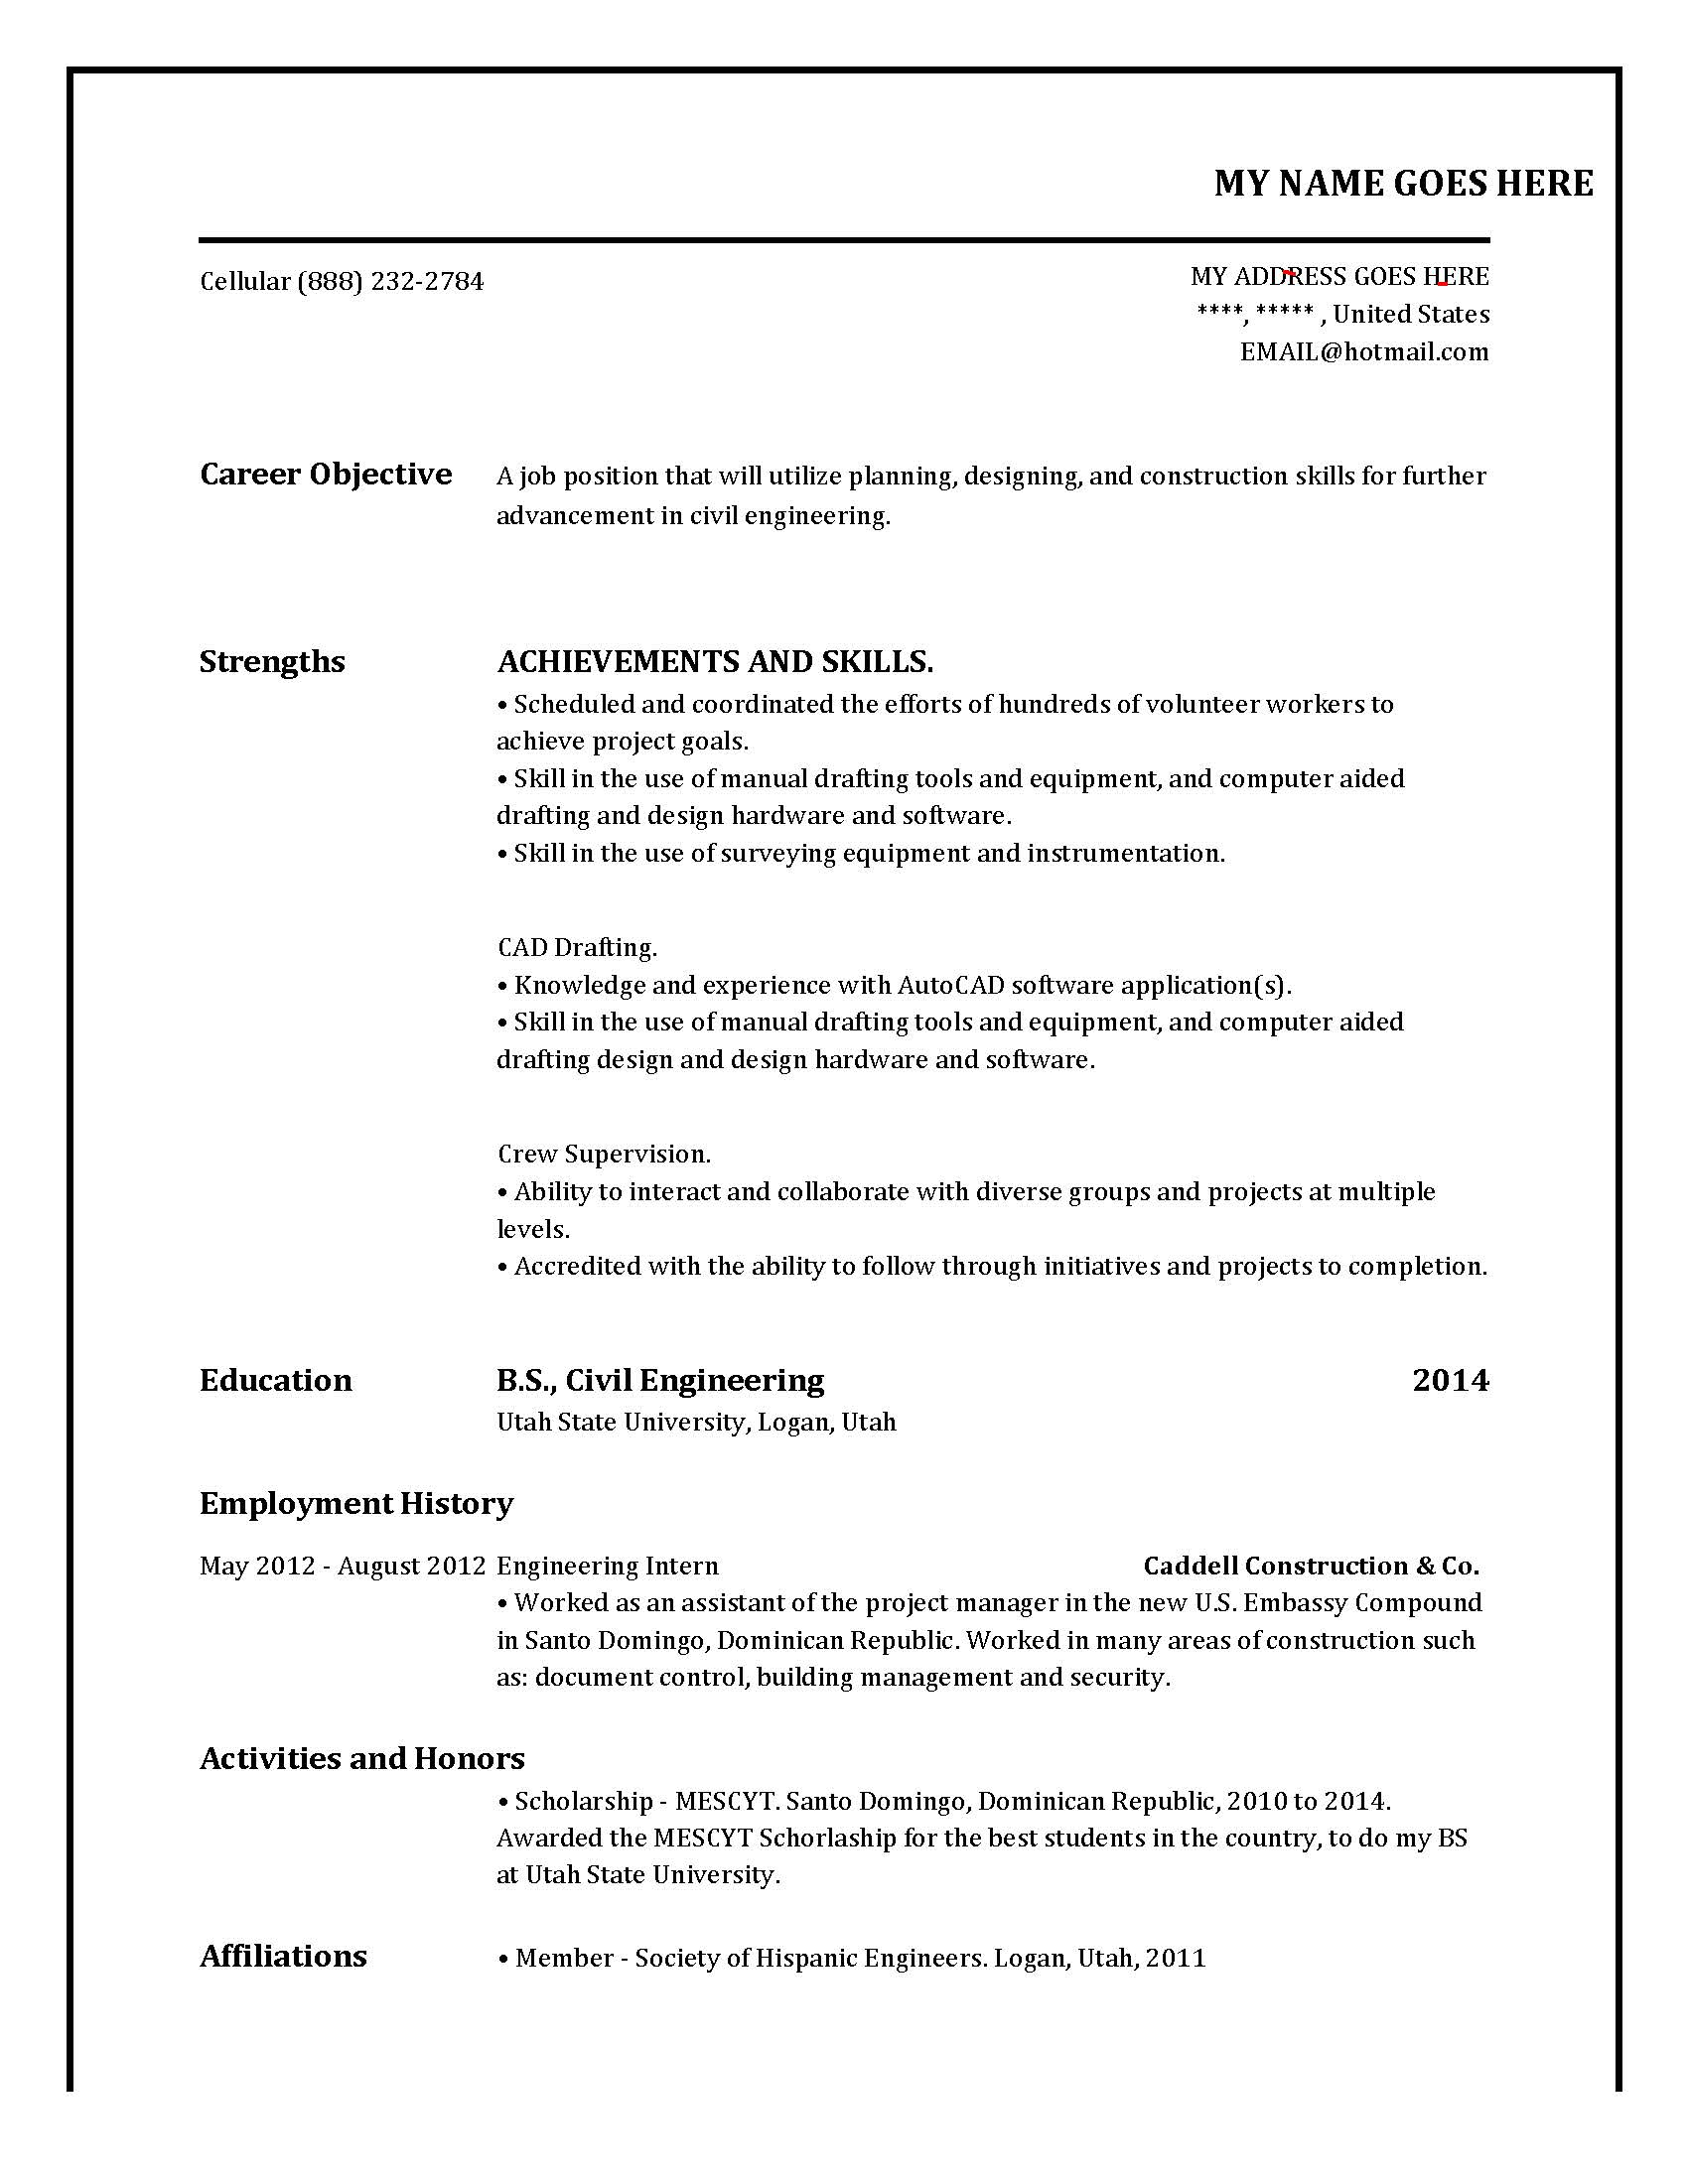 Resume Make My Own Resume make my own resume free create template the online building for med school